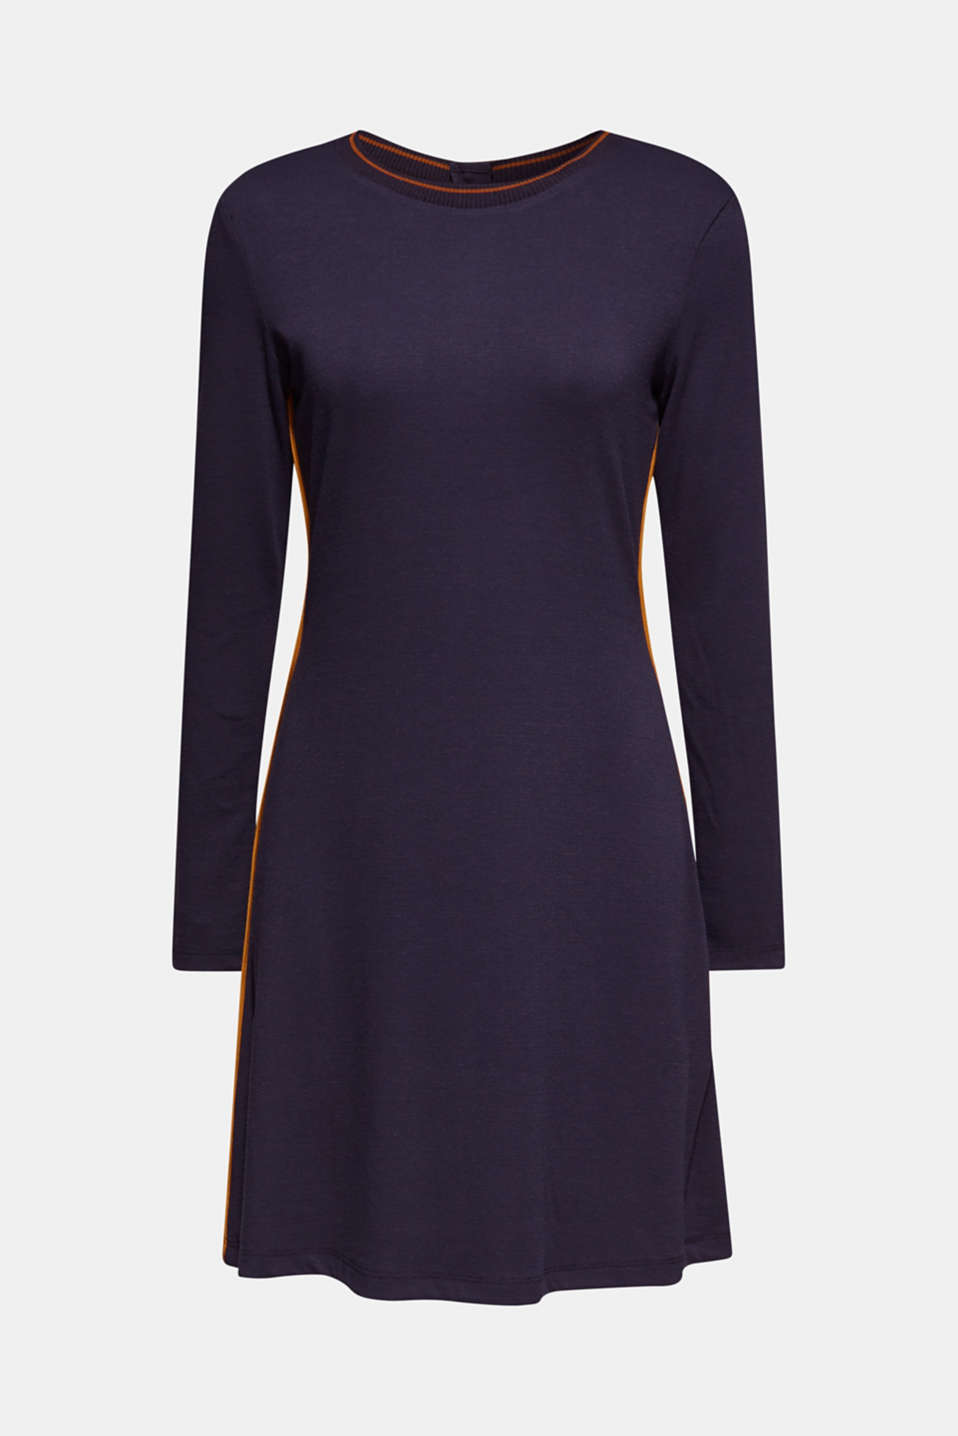 Piped stretch jersey dress, NAVY, detail image number 5